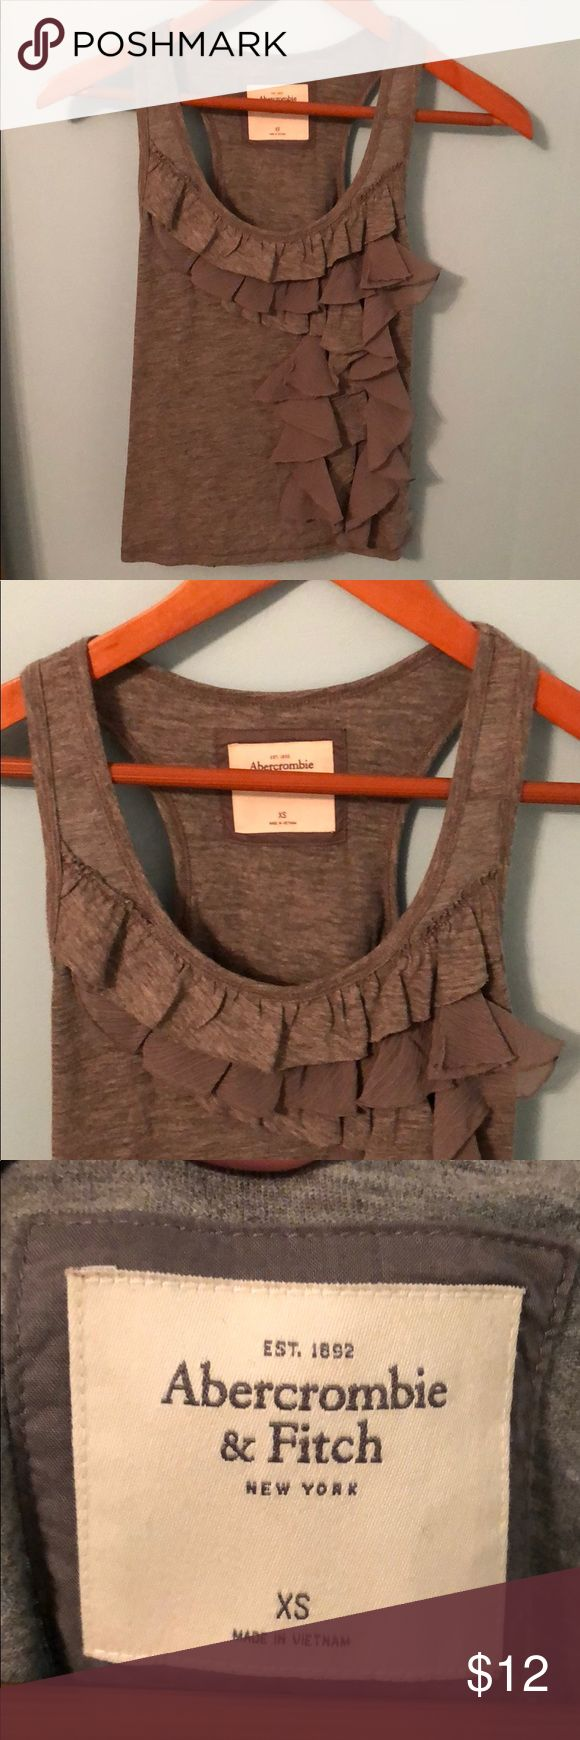 Abercrombie and Fitch tank with side ruffle. Gray tank top with side ruffle. Abercrombie & Fitch Tops Tank Tops